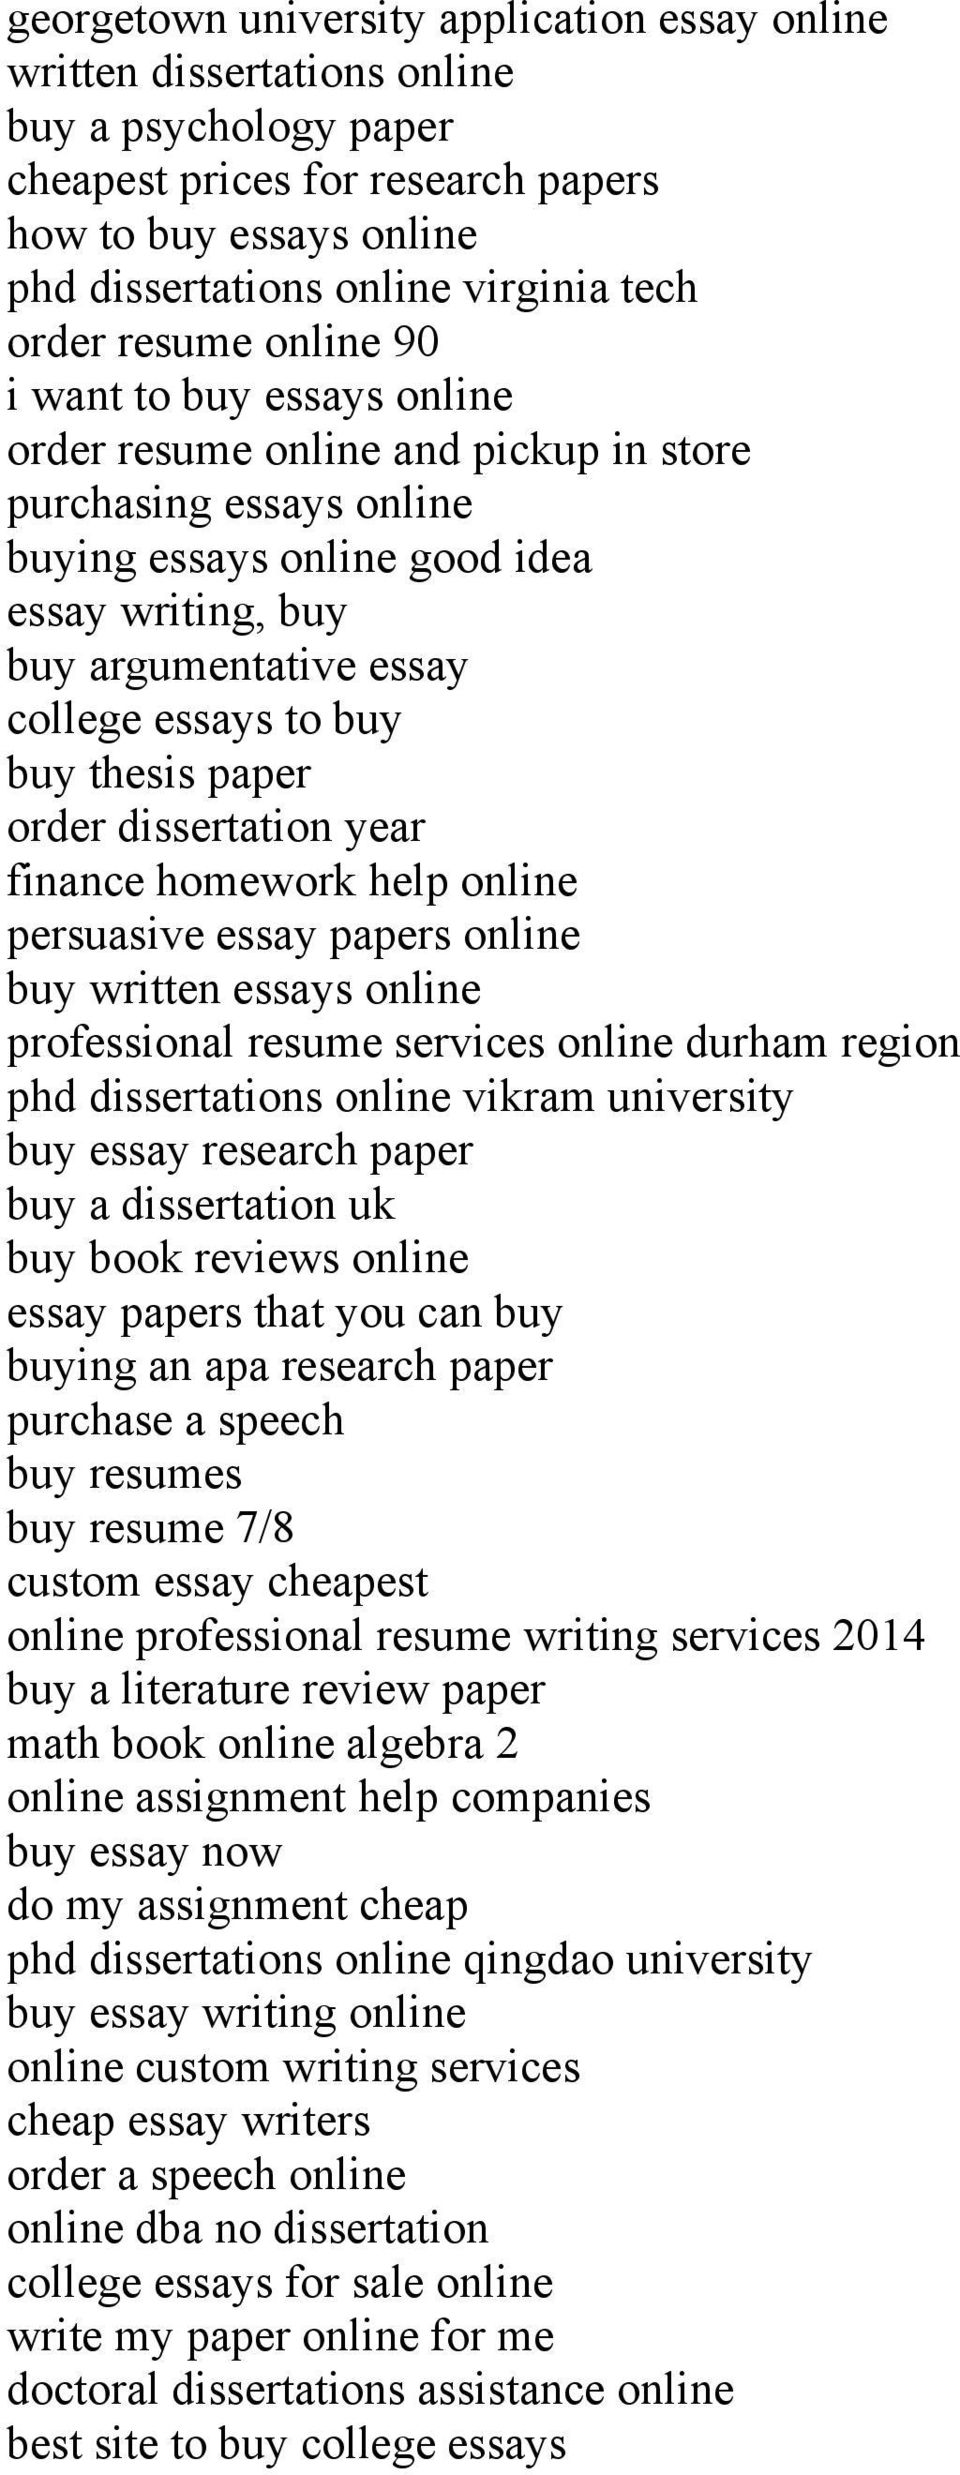 004 Research Paper Buying Page 4 Best A Online Behavior Impulse Impact Of Advertising On Consumer Behaviour Full